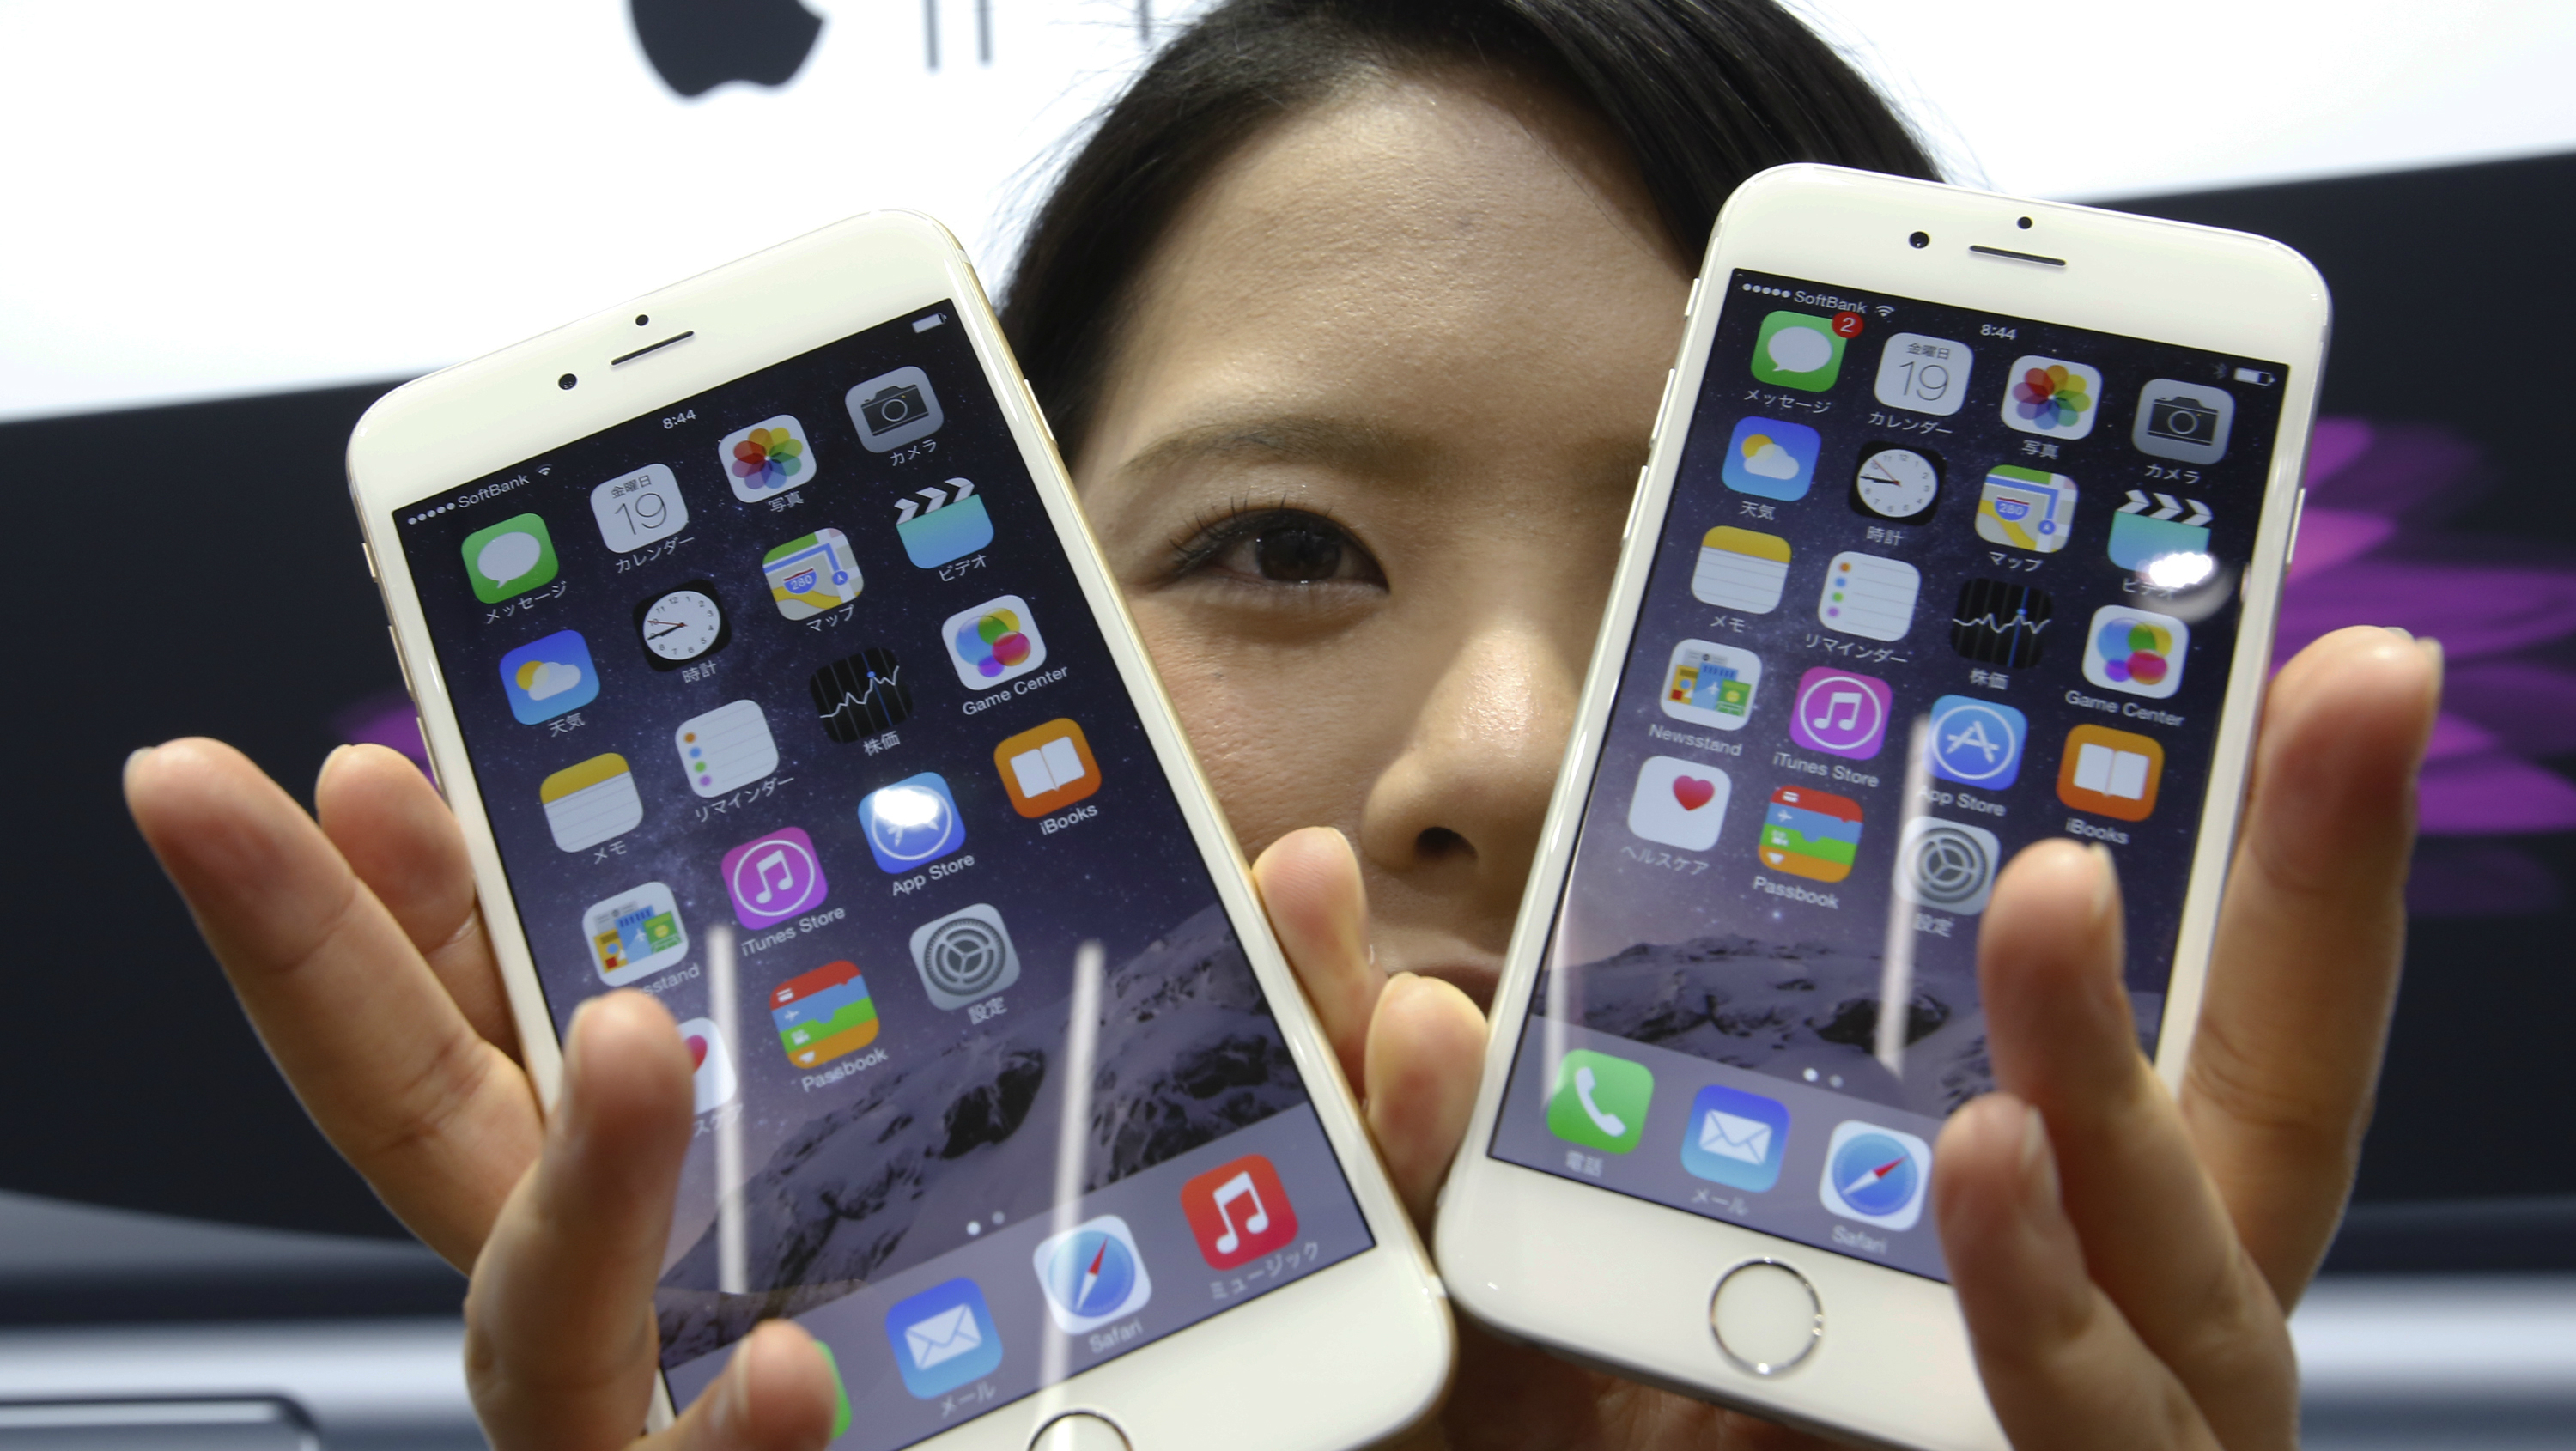 A customer shows off the new Apple iPhone 6 and 6 Plus at a store in Tokyo Friday, Sept. 19, 2014. (AP Photo/Shizuo Kambayashi)